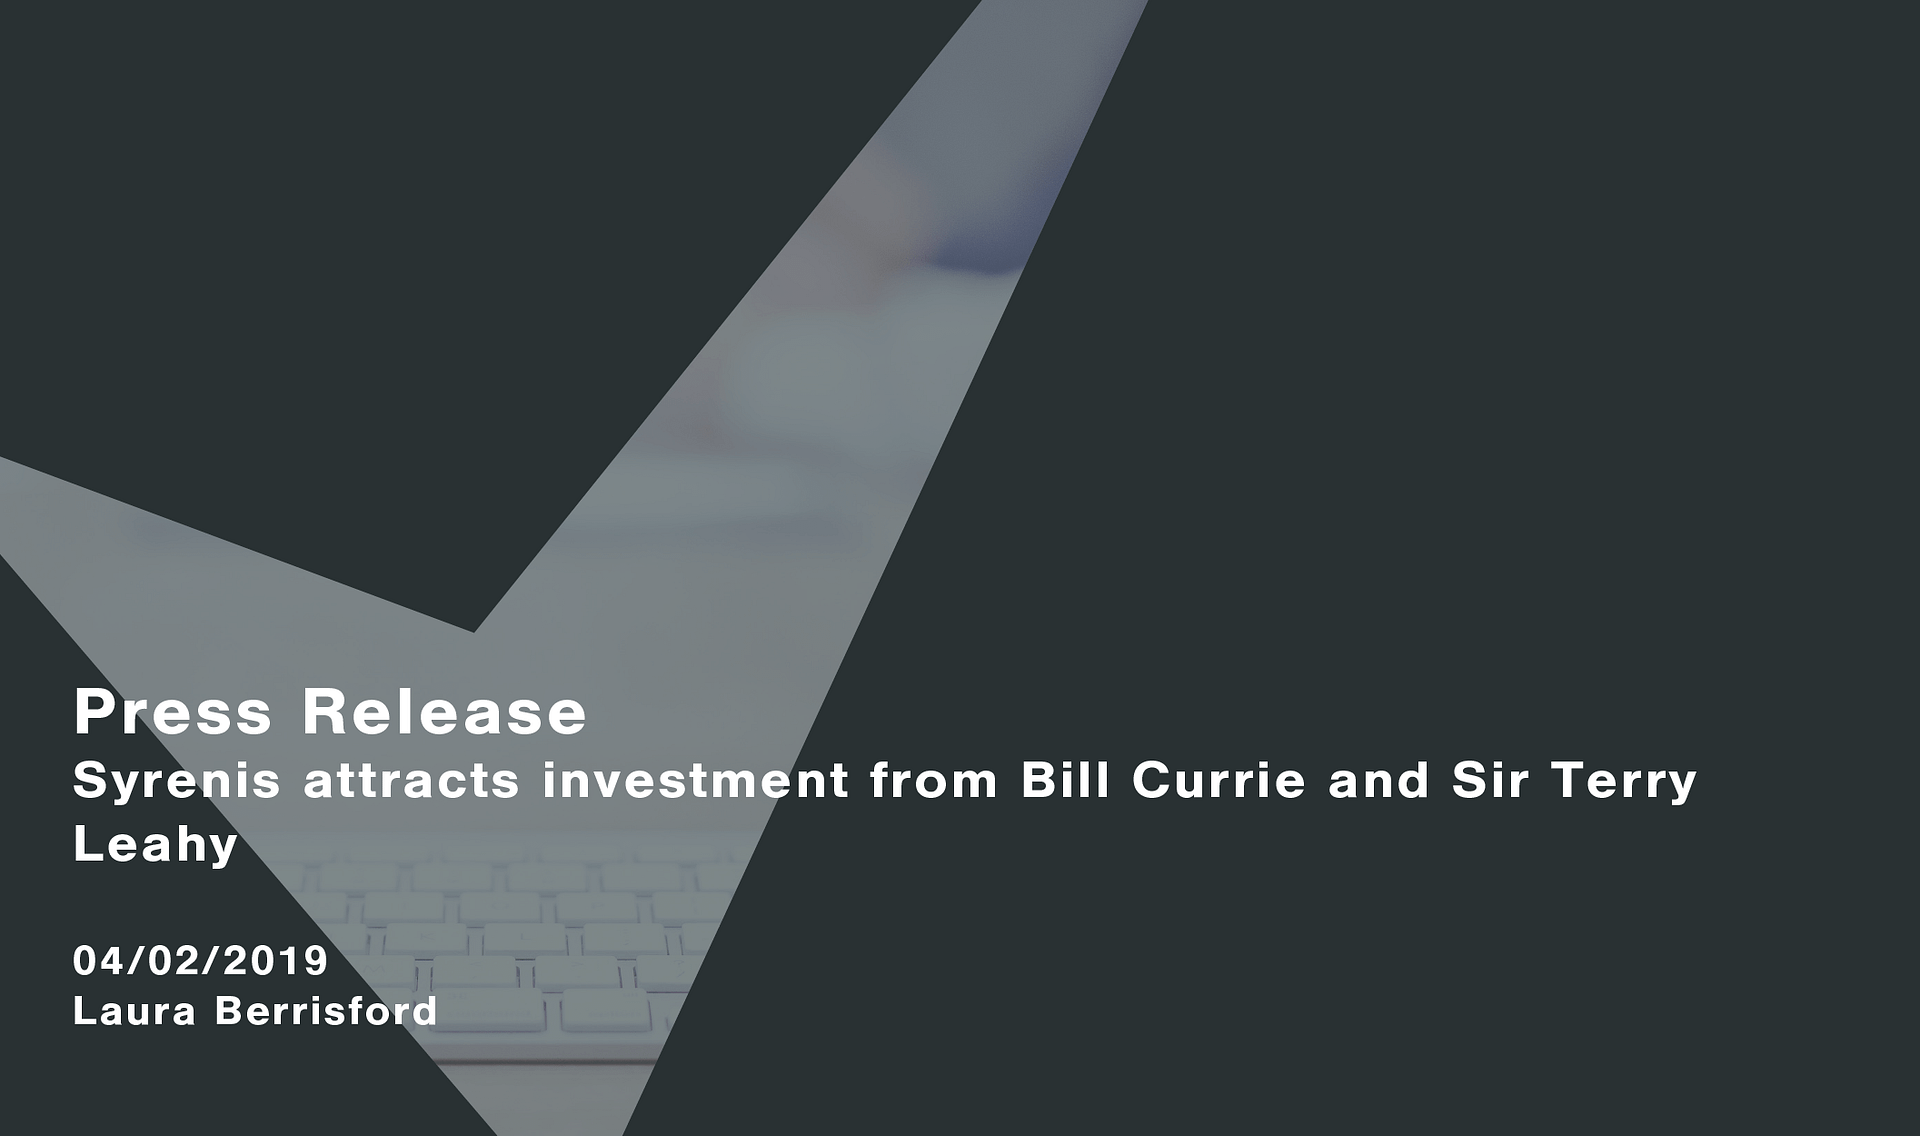 SaaS company Syrenis attracts investment from Bill Currie and Sir Terry Leahy Cassie personal information & consent management